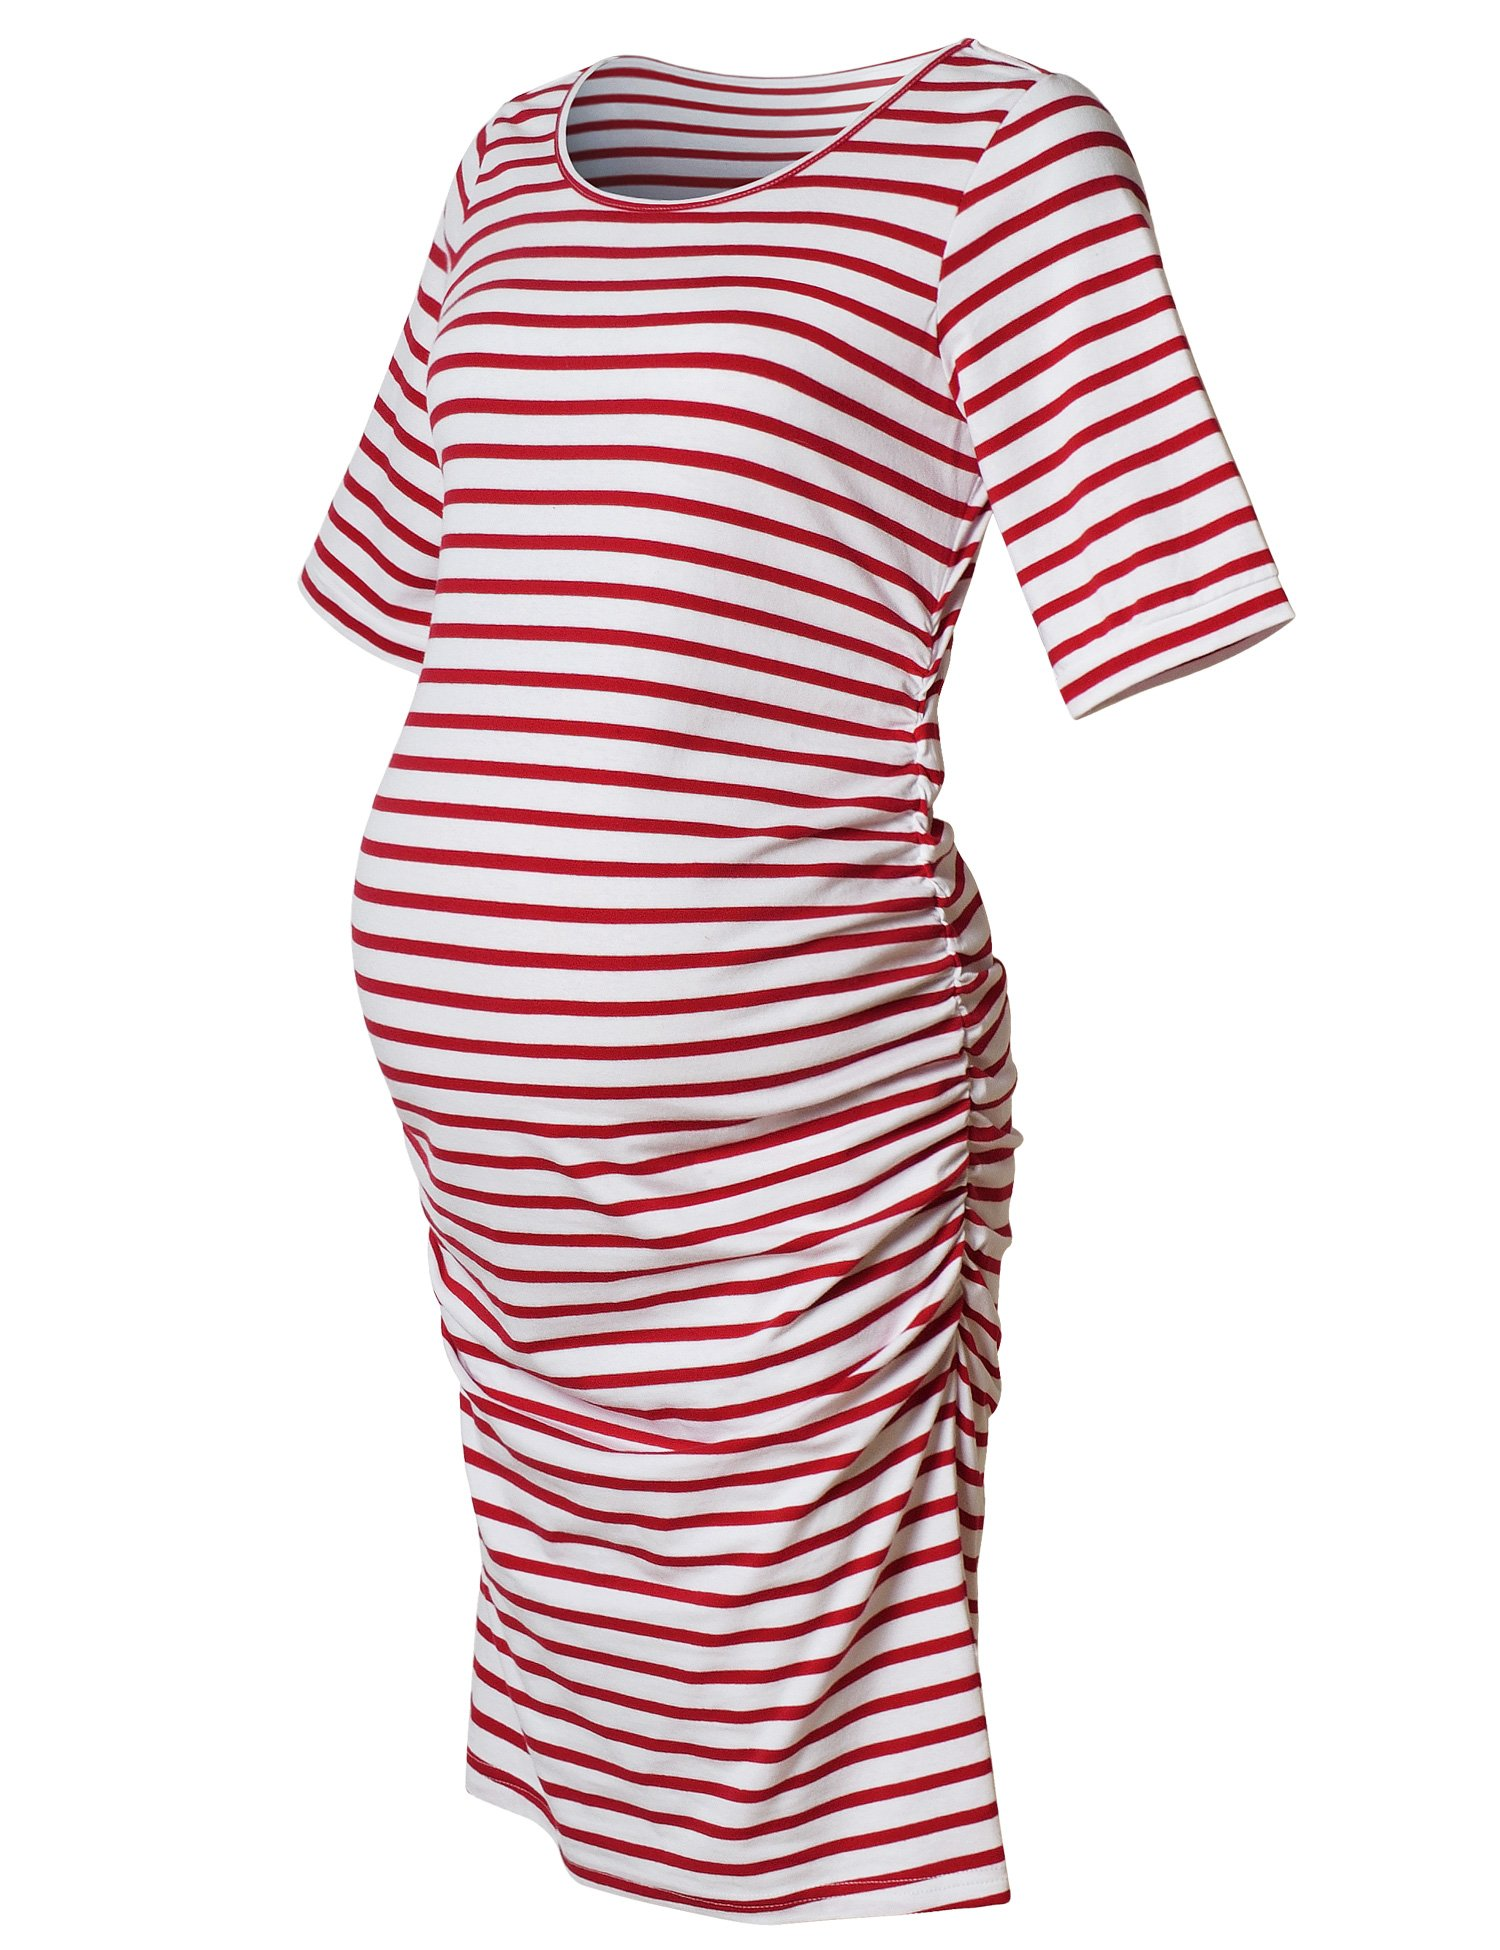 Maternity Dress,Bodycon Maternity Clothes for Women,Casual Short Sleeve Ruched Sides,Red and White Stripe XXL